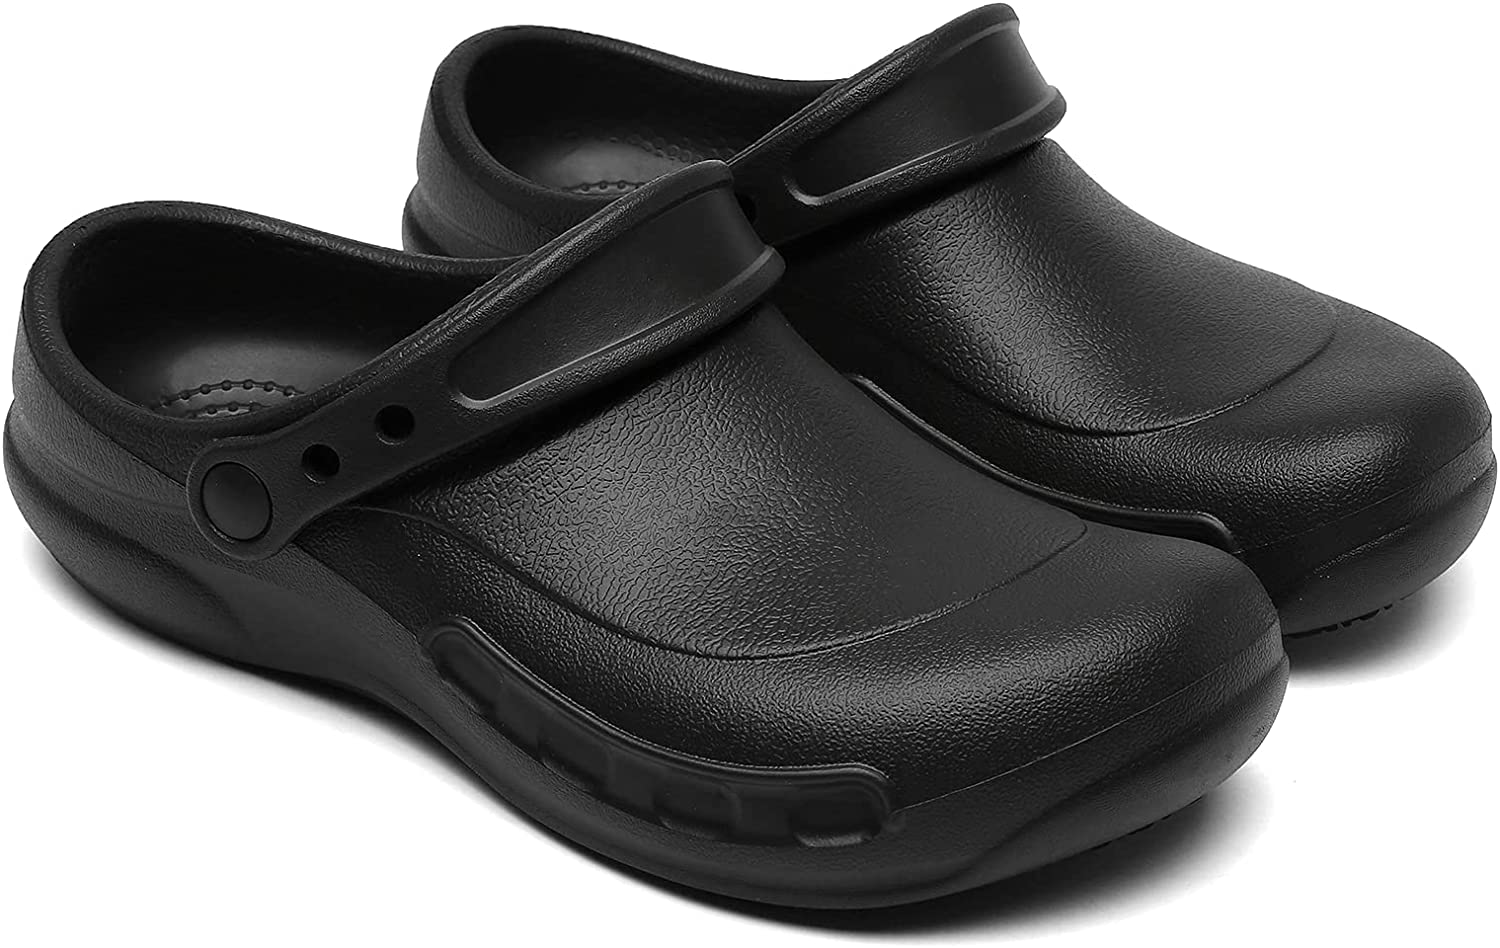 JSWEI Chef Shoes for Men - Professional It is very popular Choice Resistant Oil Water Nurs